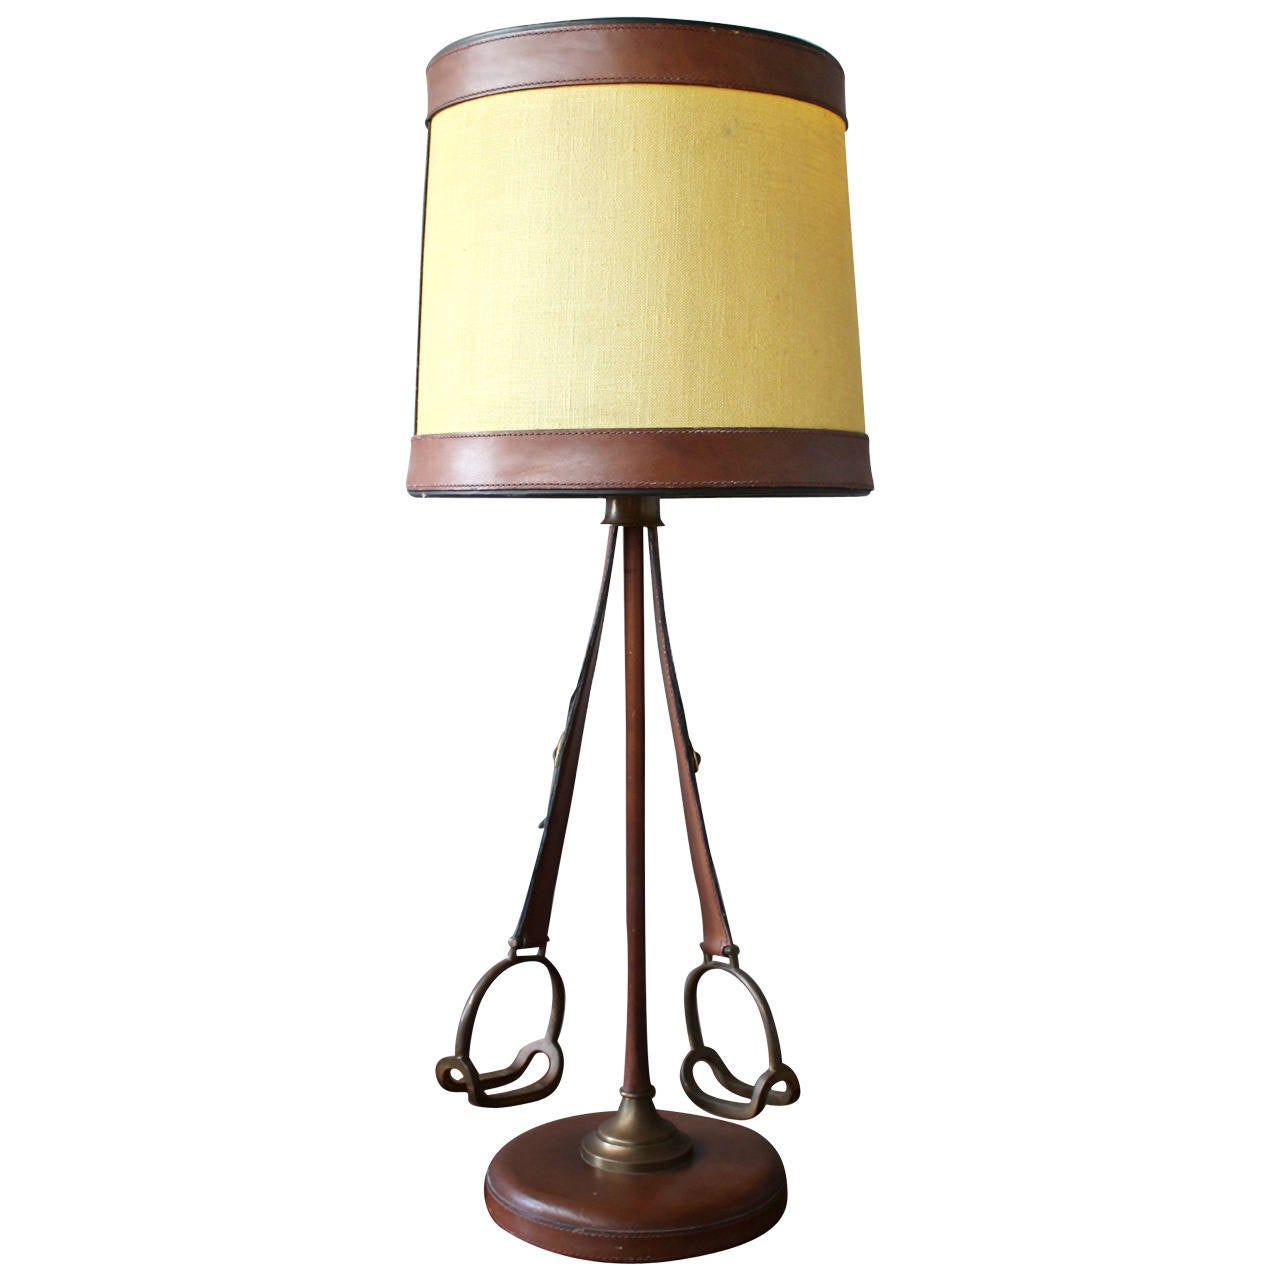 unusual french stirrup table lamp for sale at 1stdibs. Black Bedroom Furniture Sets. Home Design Ideas